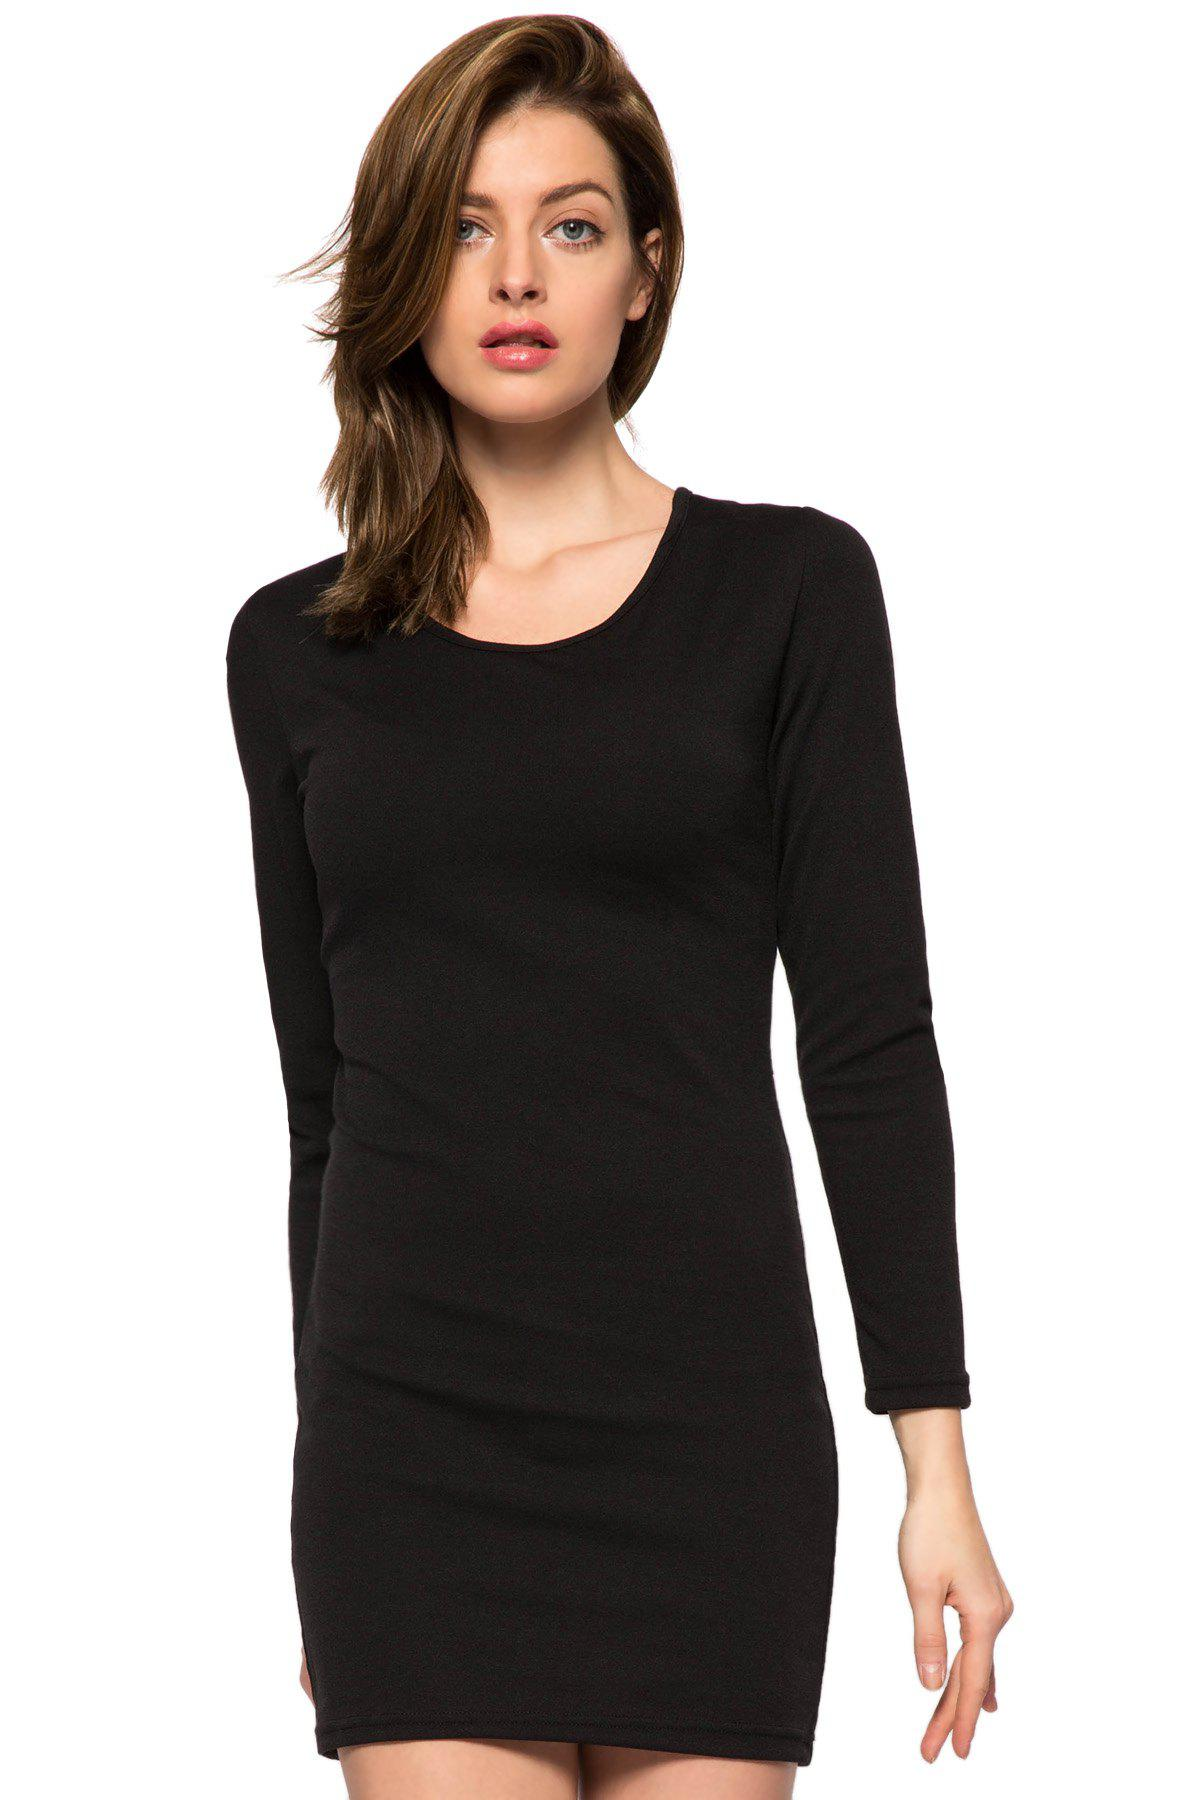 Fashionable Scoop Collar Long Sleeve Black Hollow Back Slimming Women's Dress - BLACK L